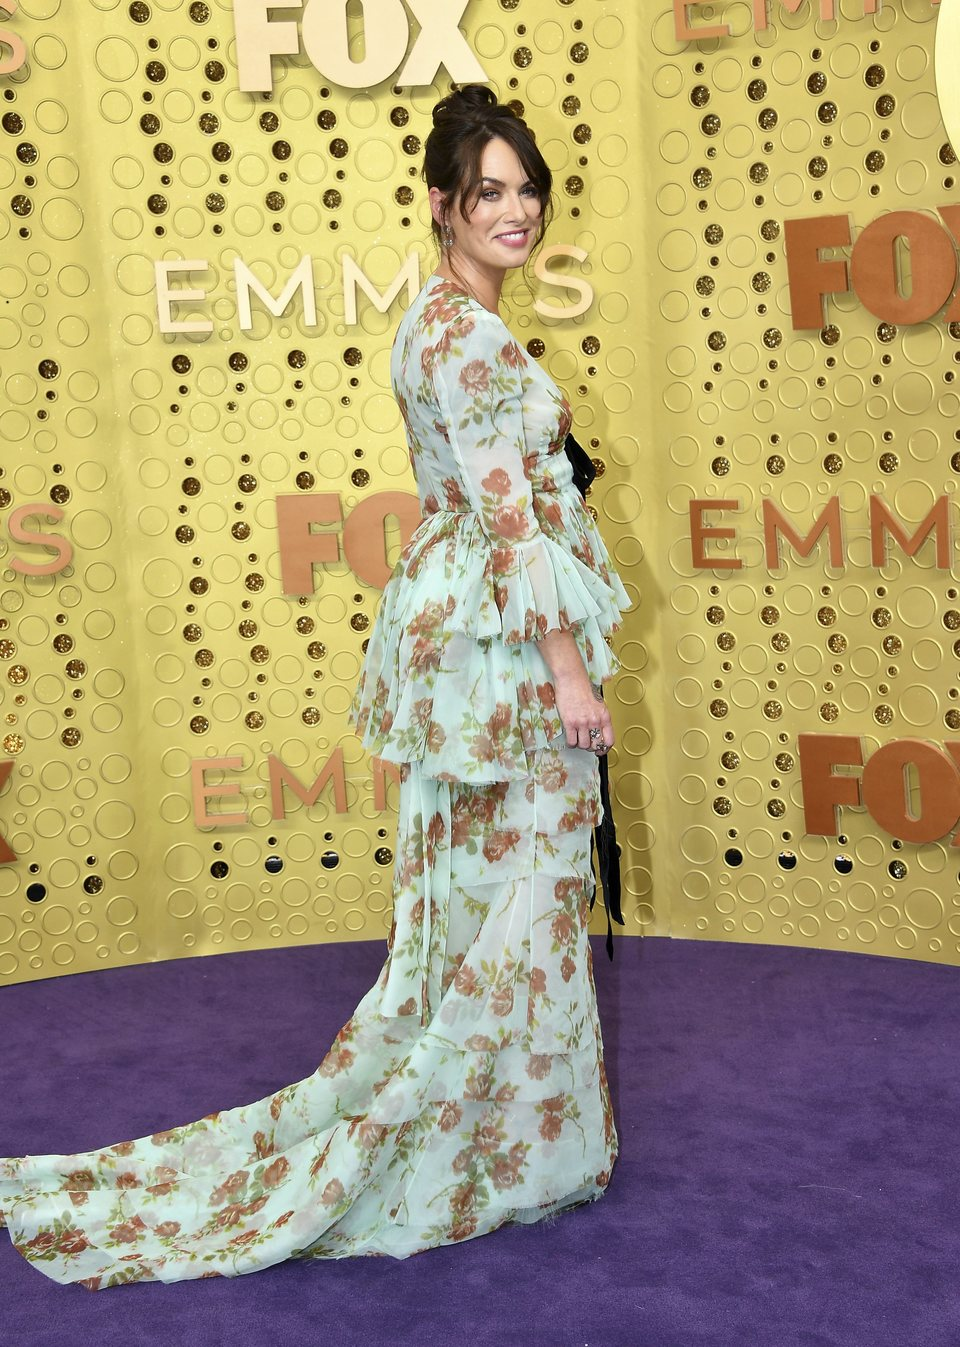 Lena Headey at the Emmy 2019 red carpet